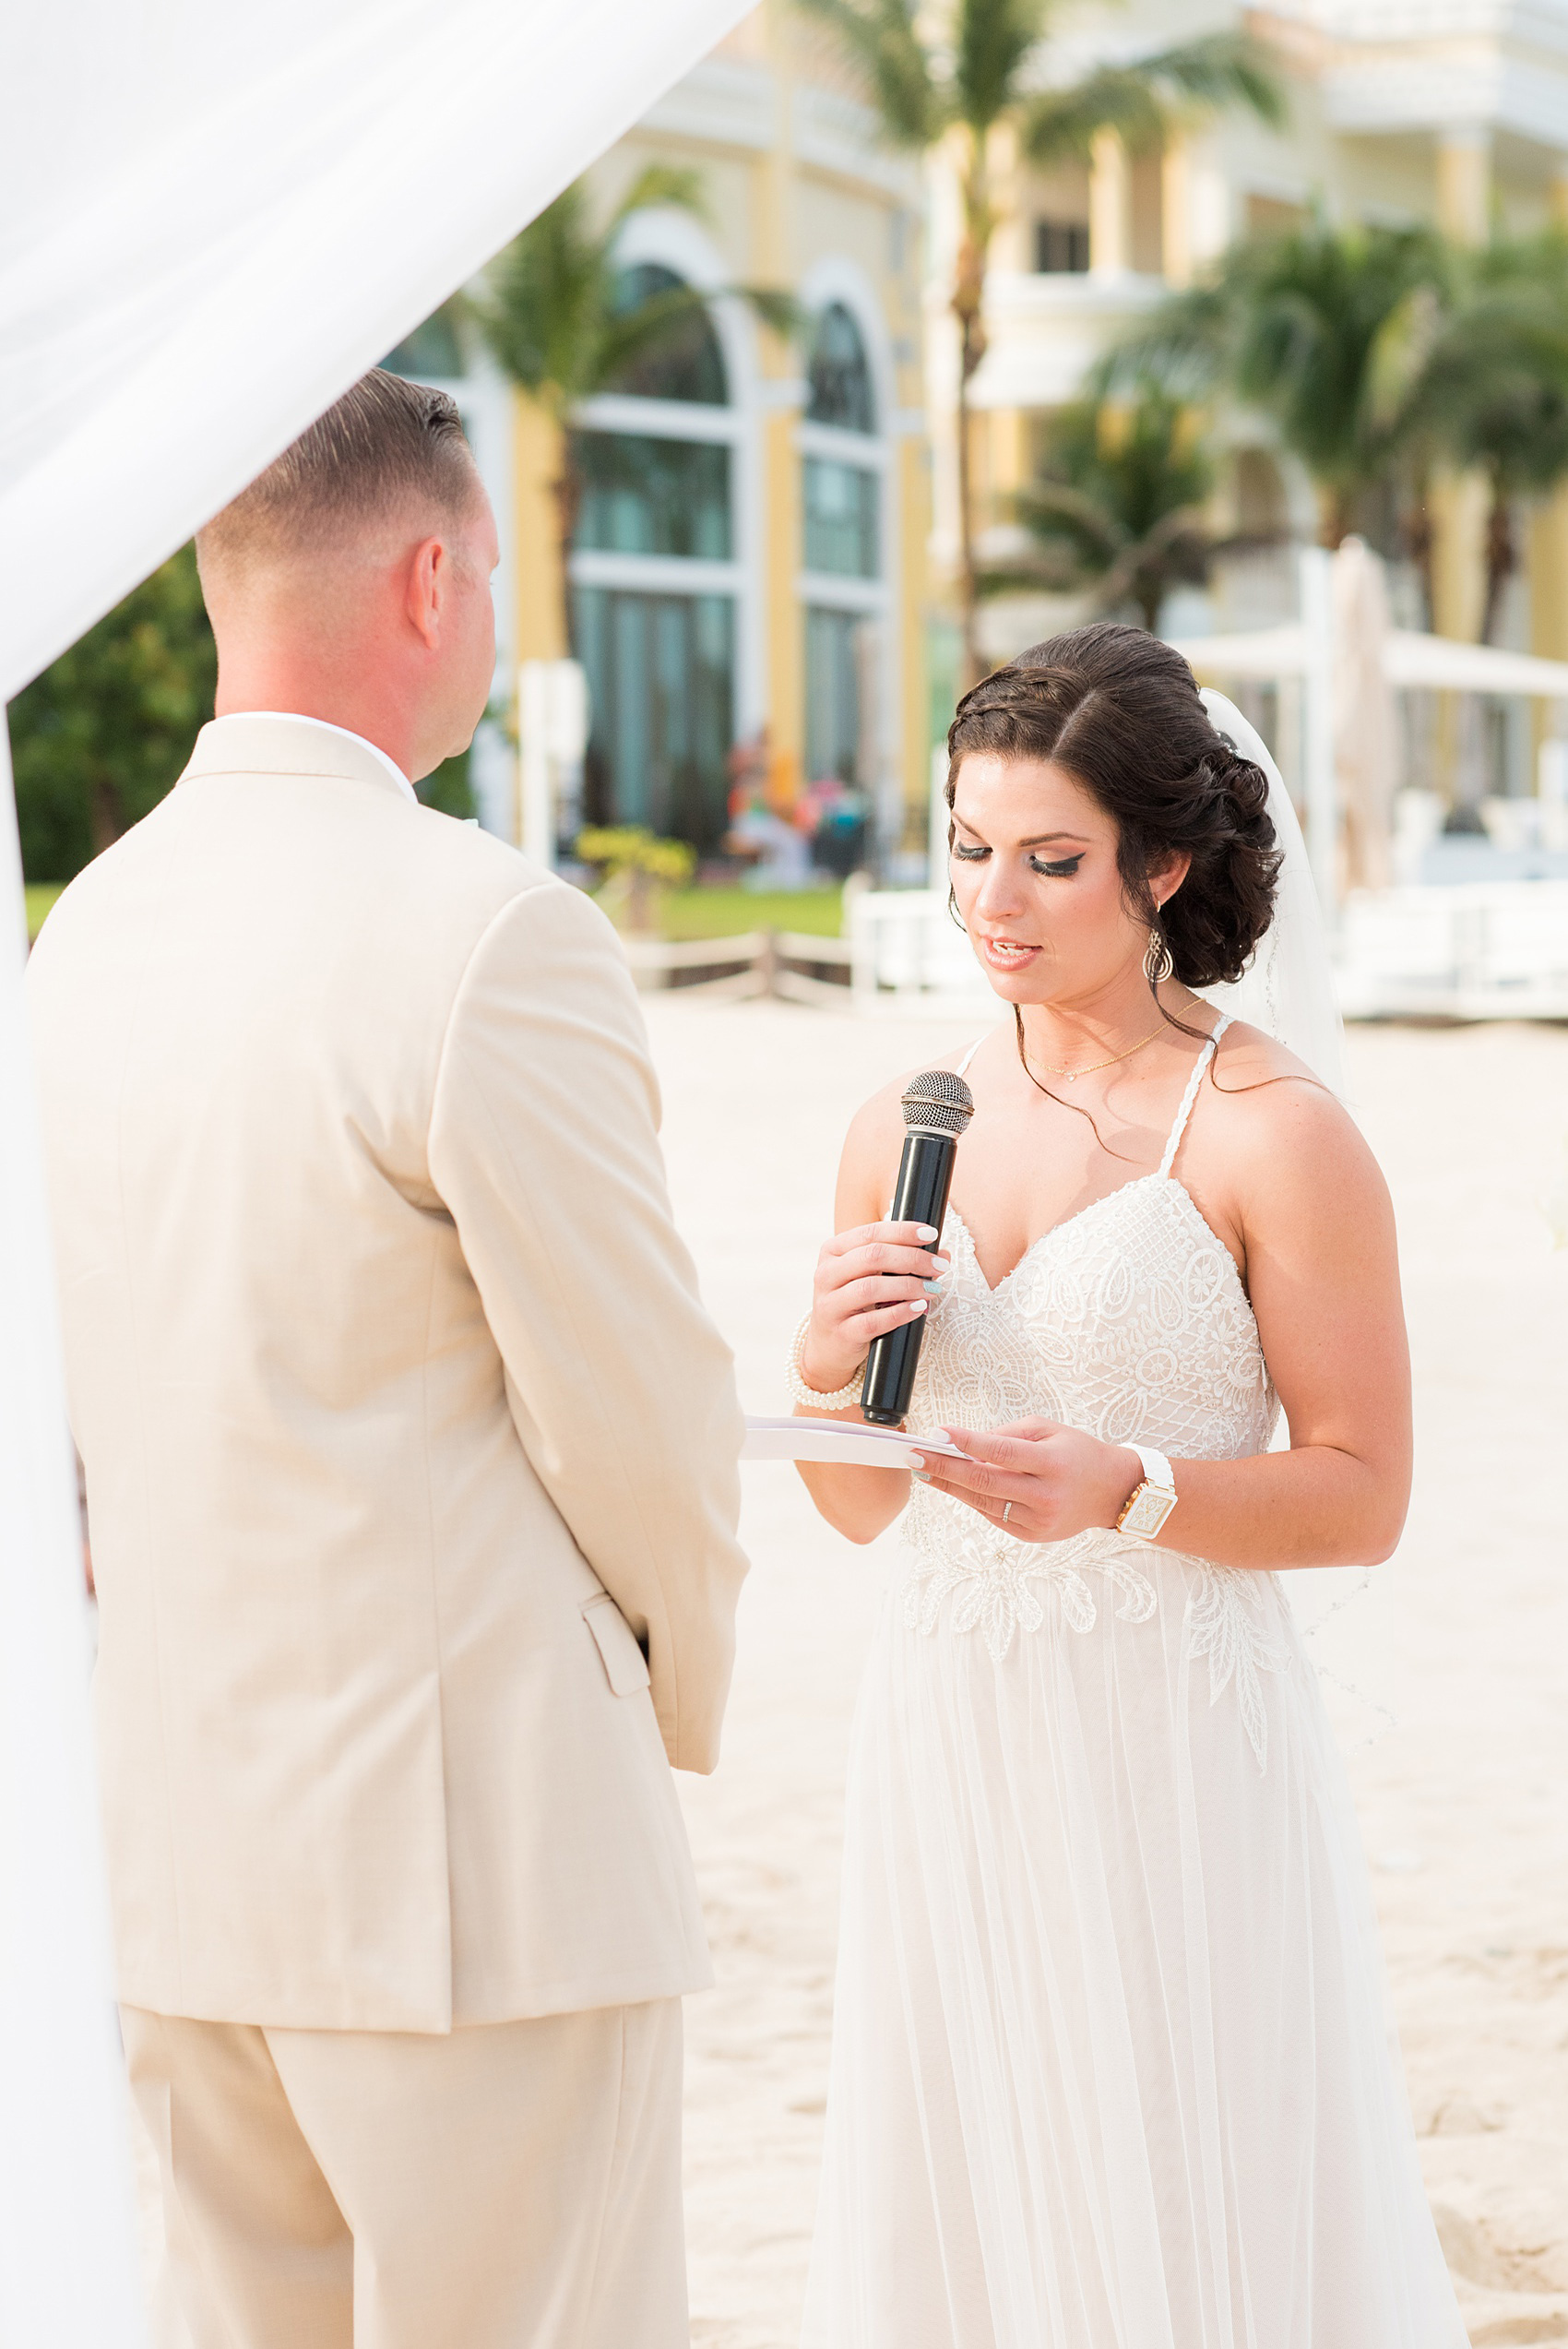 Mikkel Paige Photography photos from a wedding at Grand Paraiso, Mexico, Playa del Carmen Iberostar resort. Picture of the bride reciting her vows at their beach ceremony.